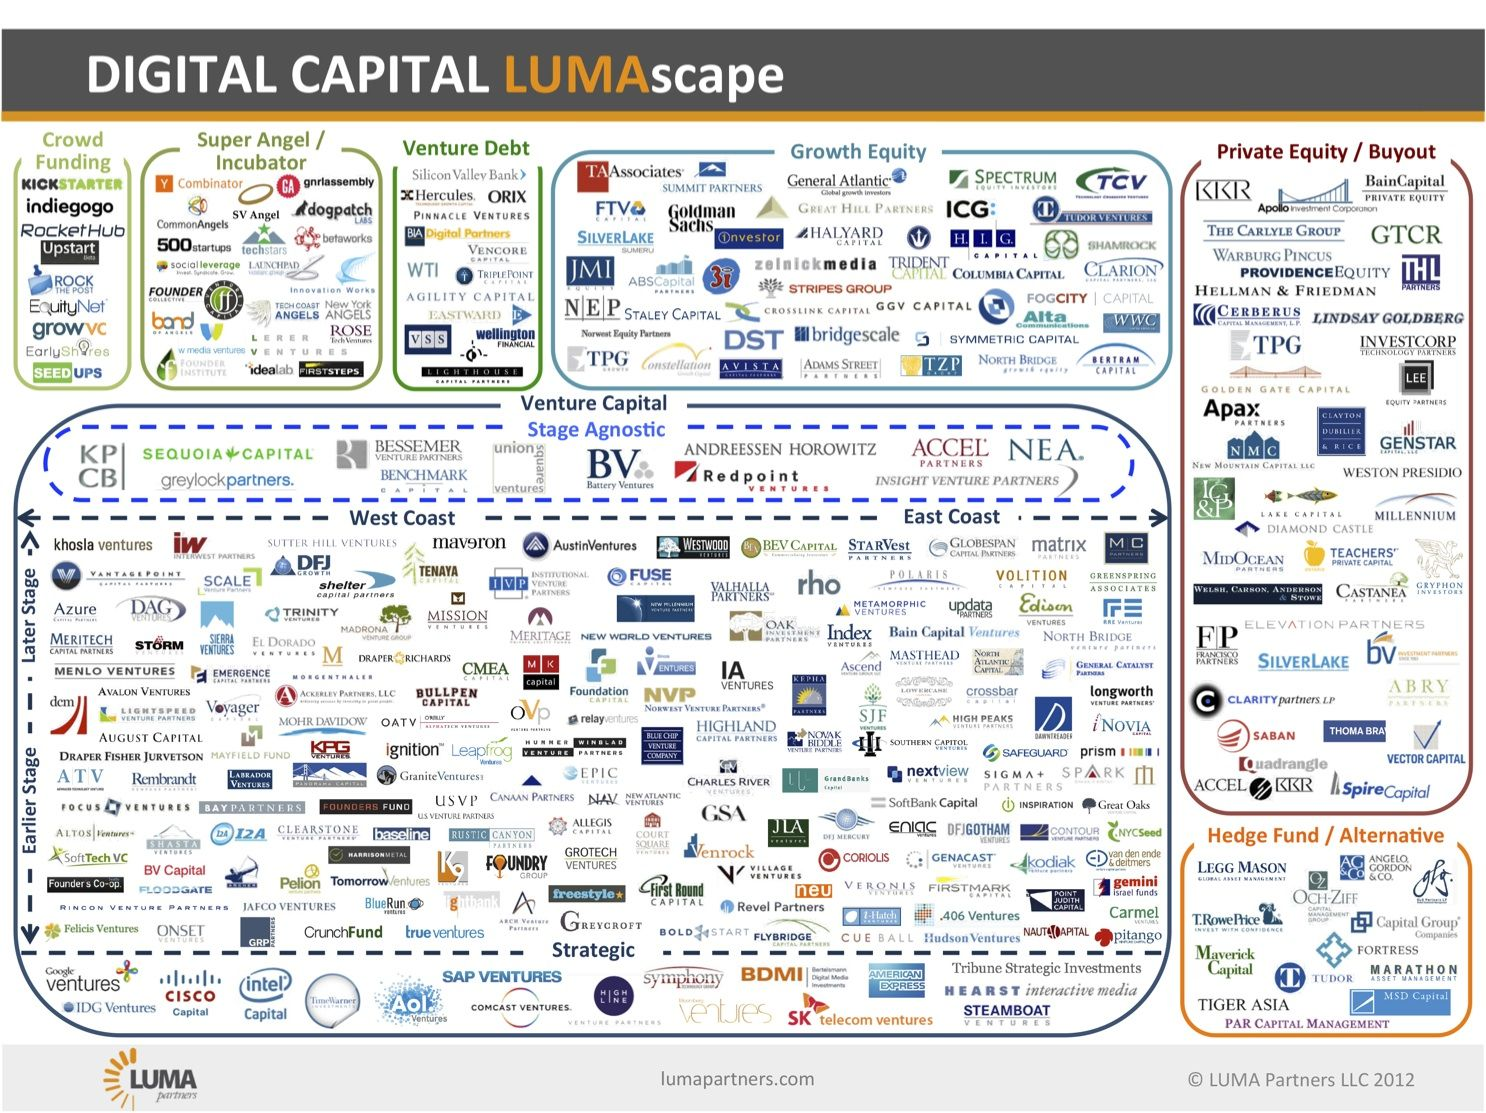 Digital Capital Lumascape By Terence Kawaja Luma Partners Via Slideshare A Map Of Suppliers Of Capital To Us Digital Media Companies